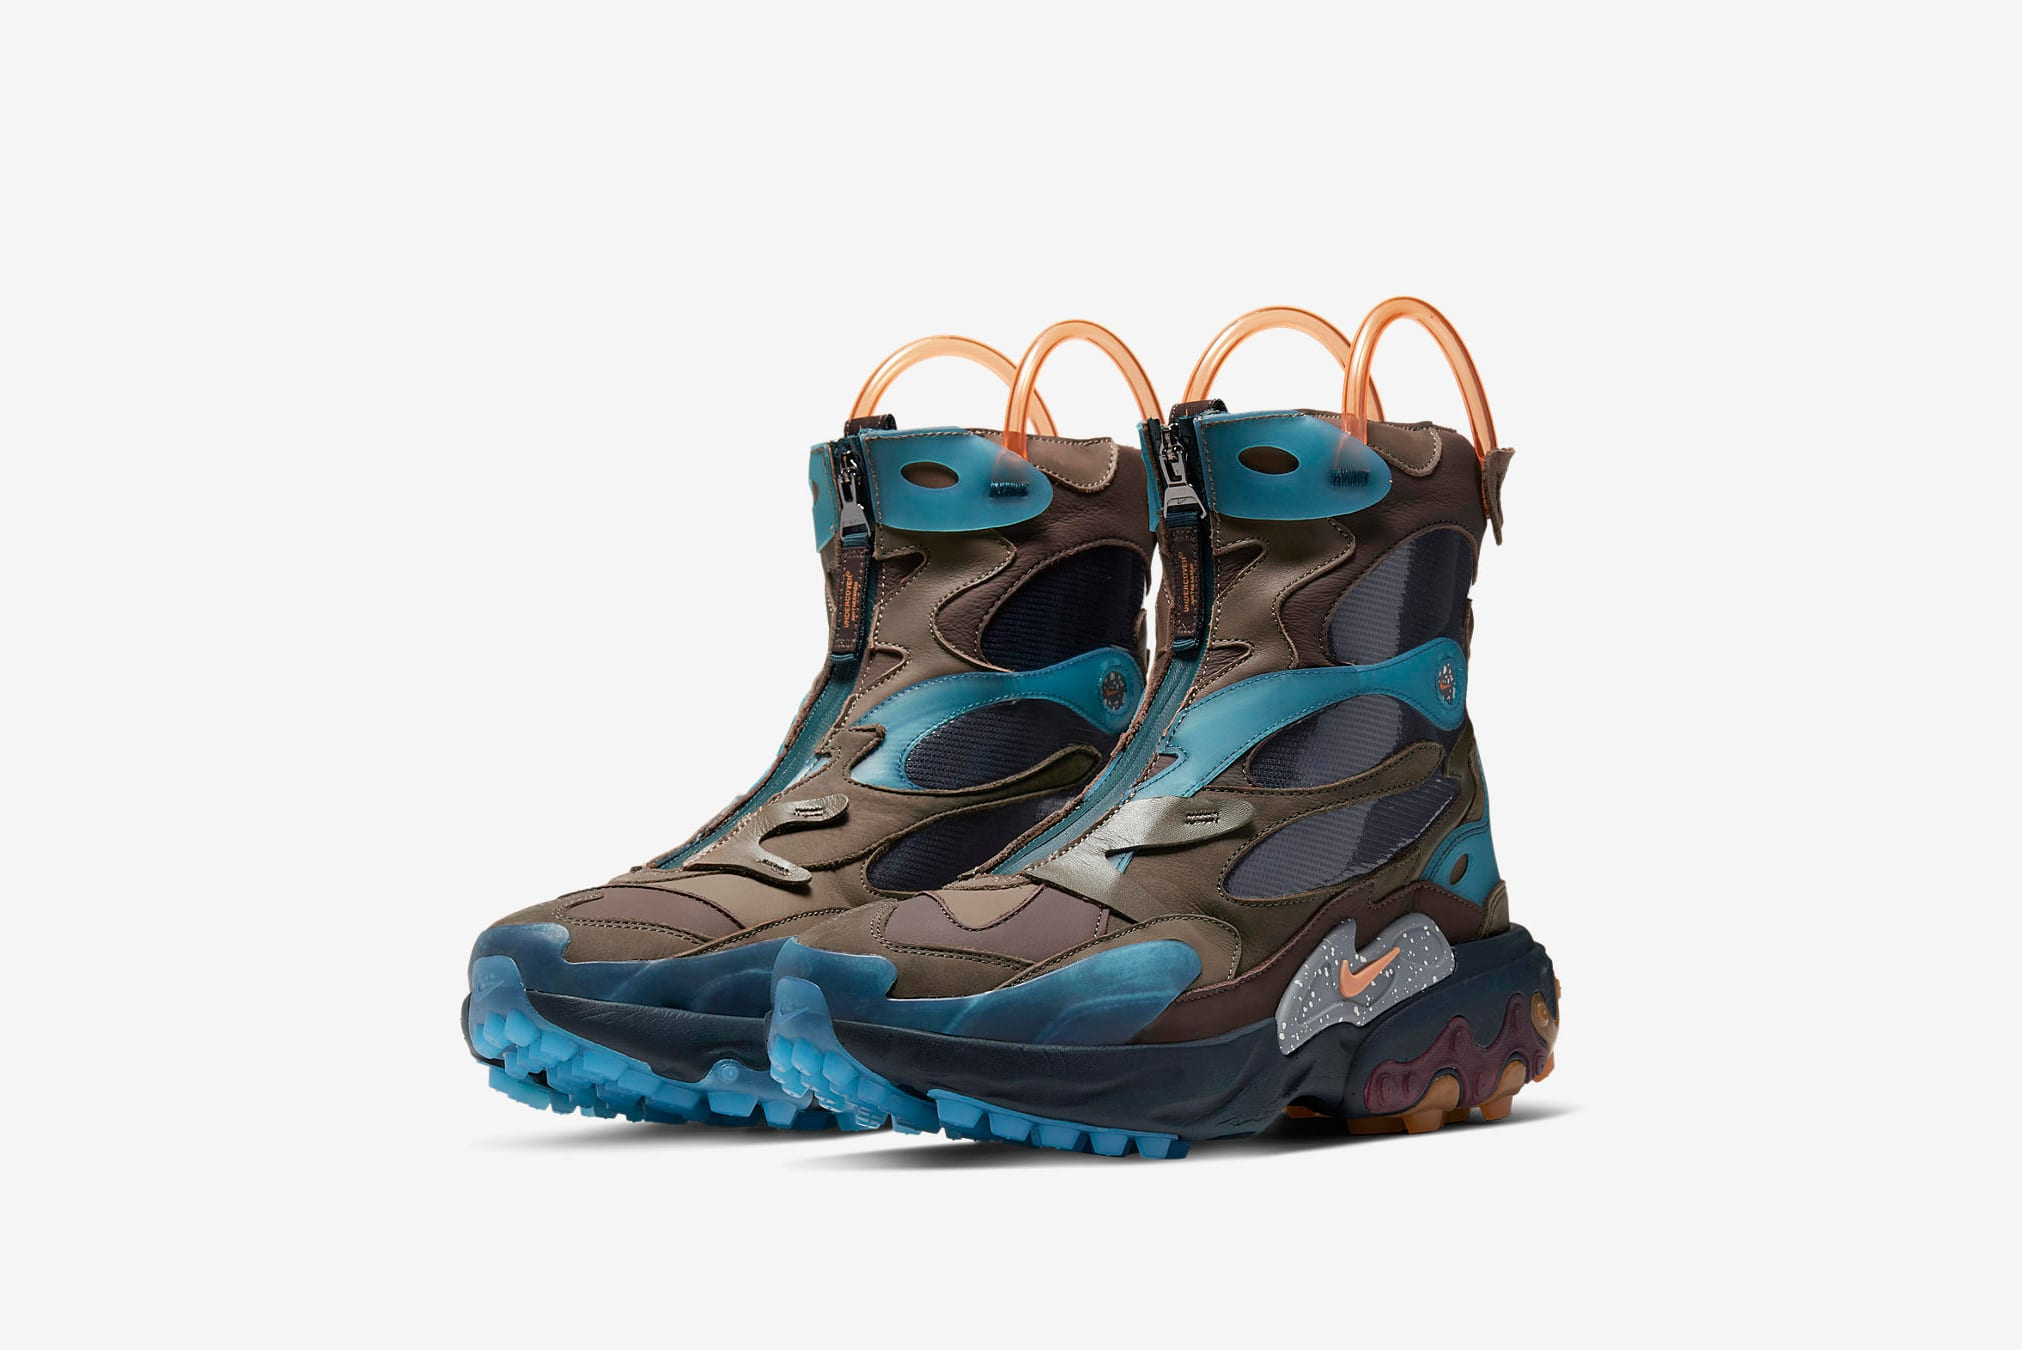 Nike x Undercover React Boot - CJ6971-200